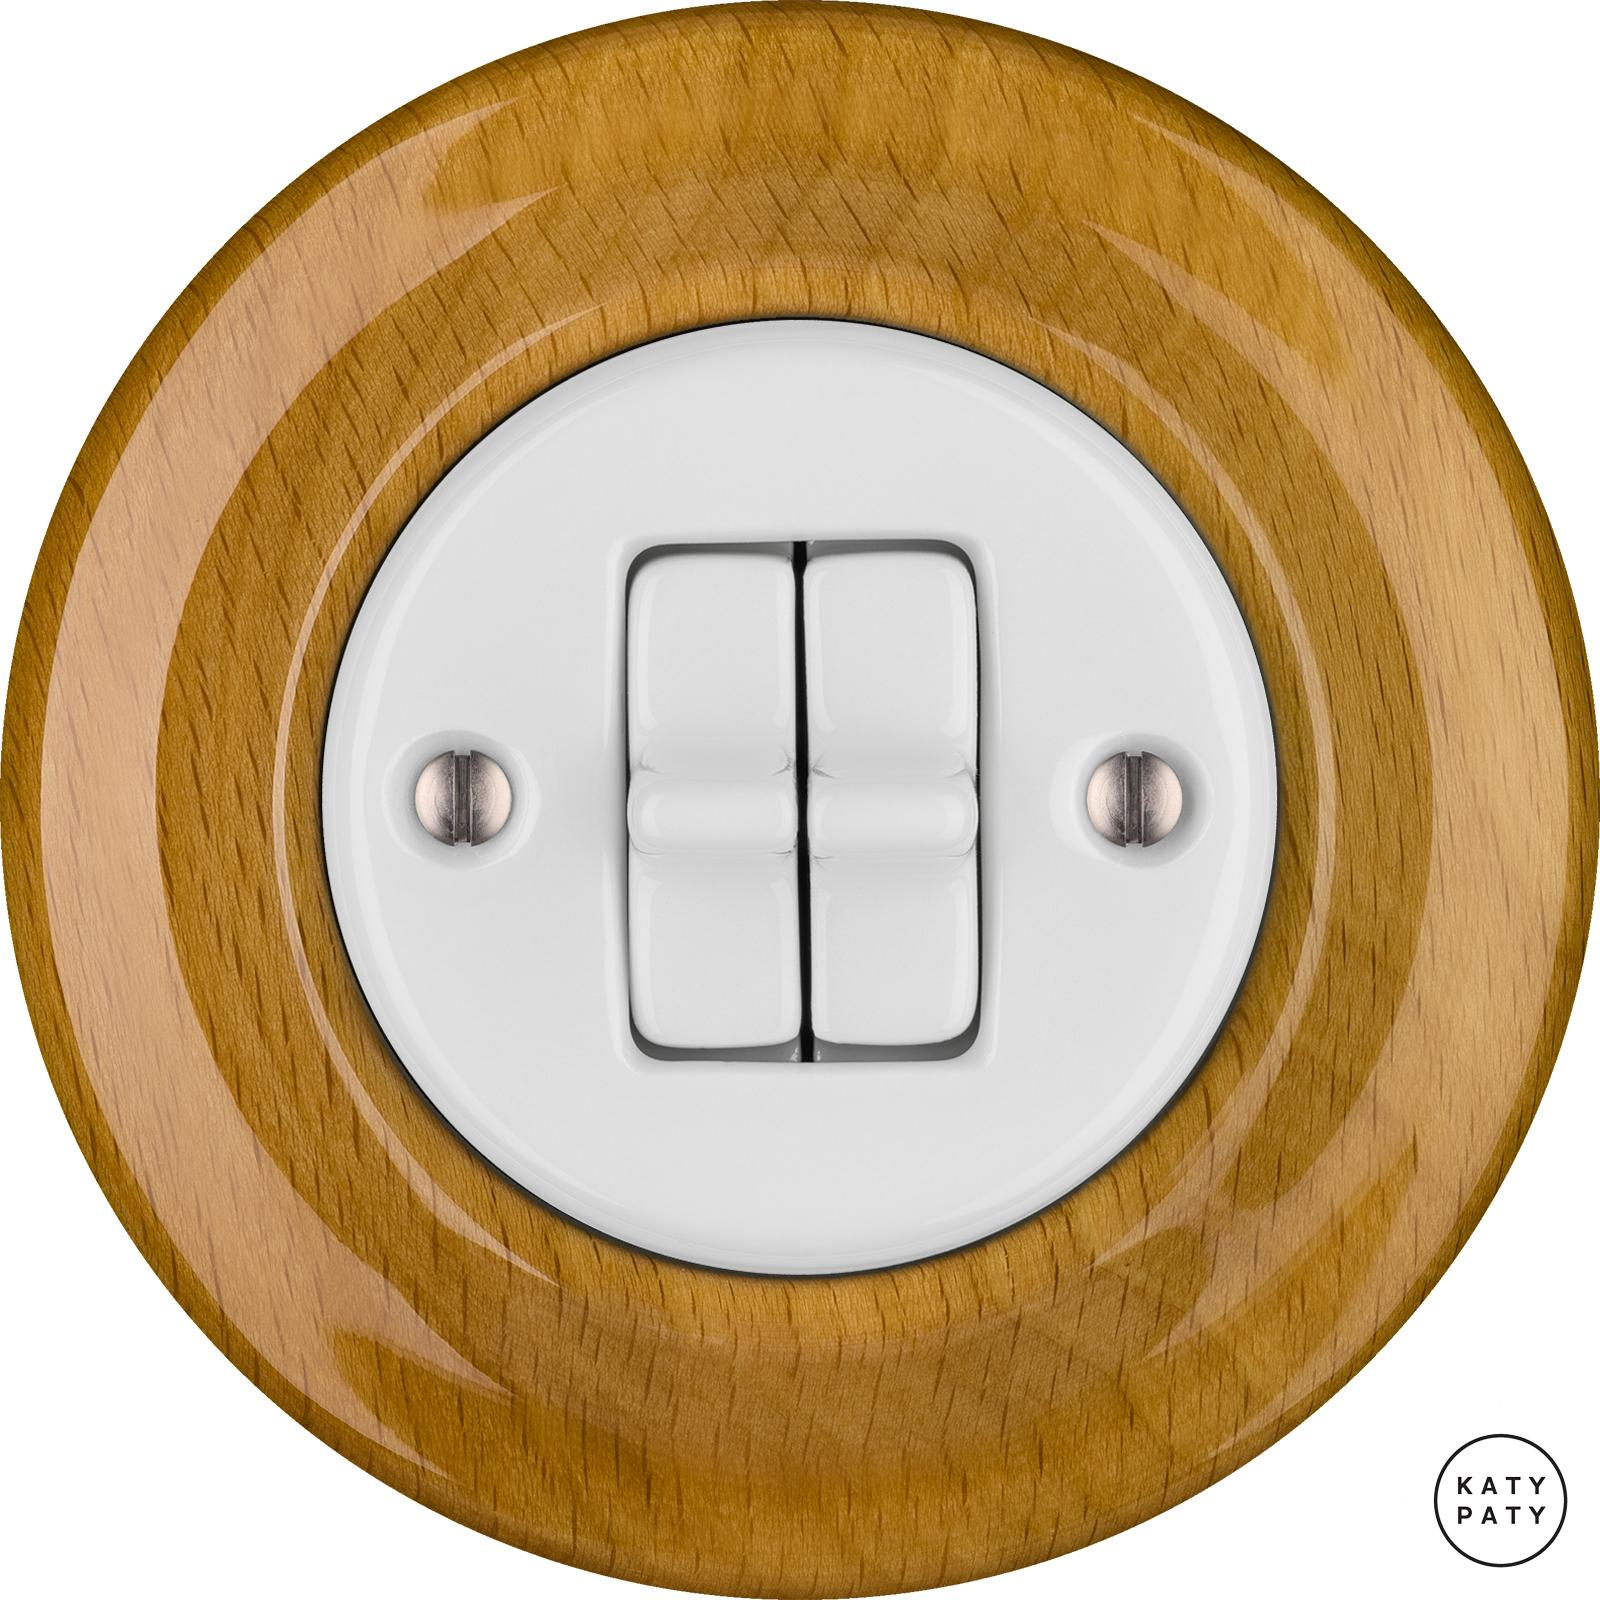 Porcelain toggle switches - a 2 gang ()  - FAGUS | Katy Paty